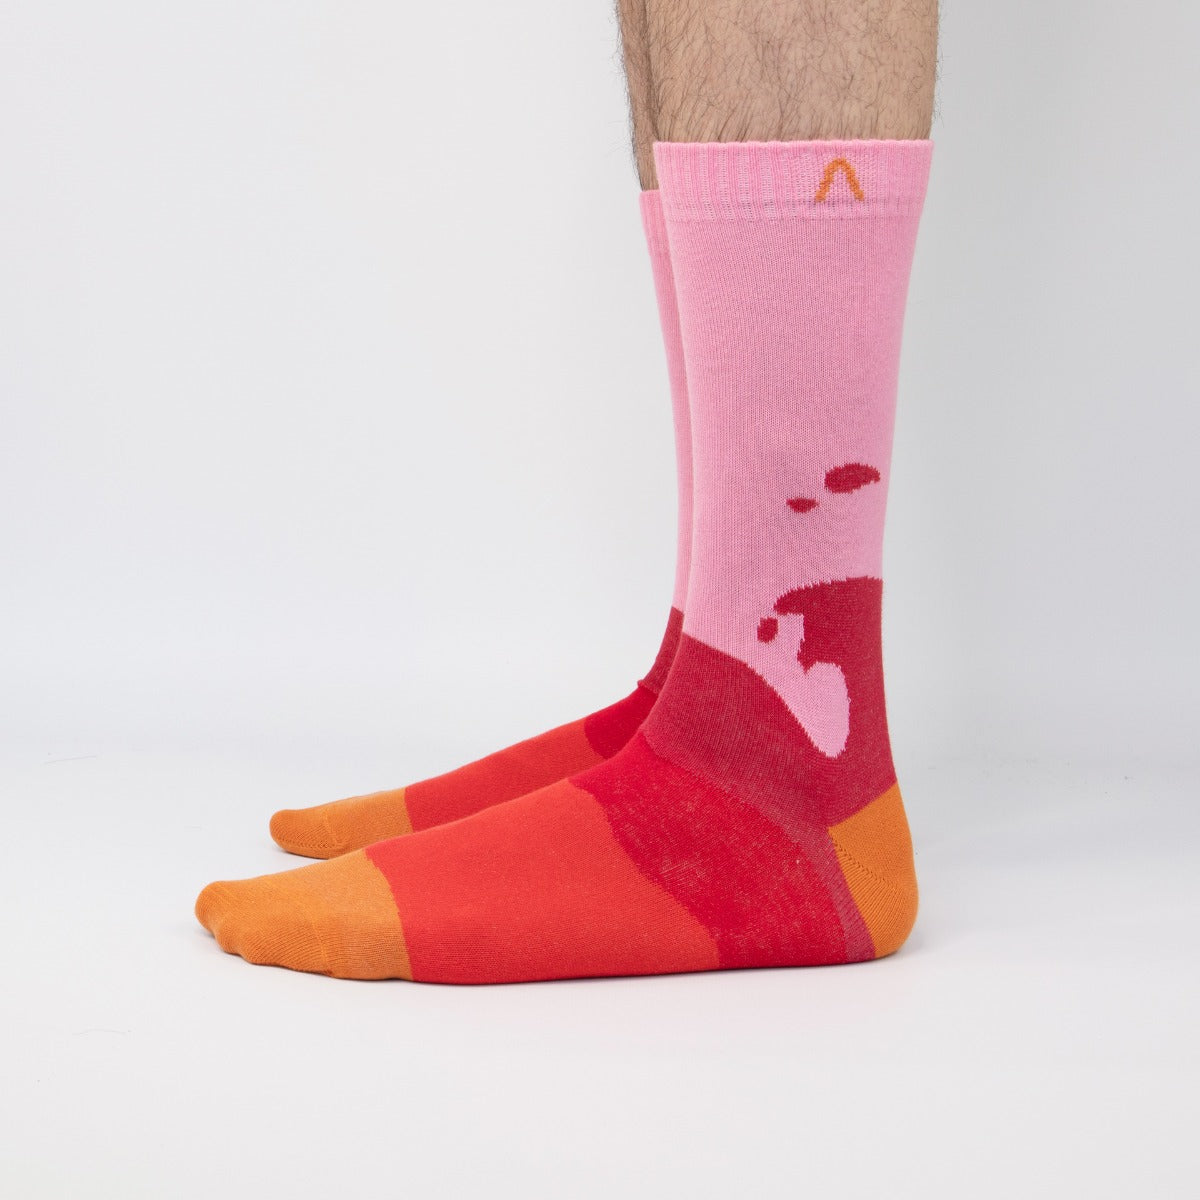 ACBC Socks Wave Pink